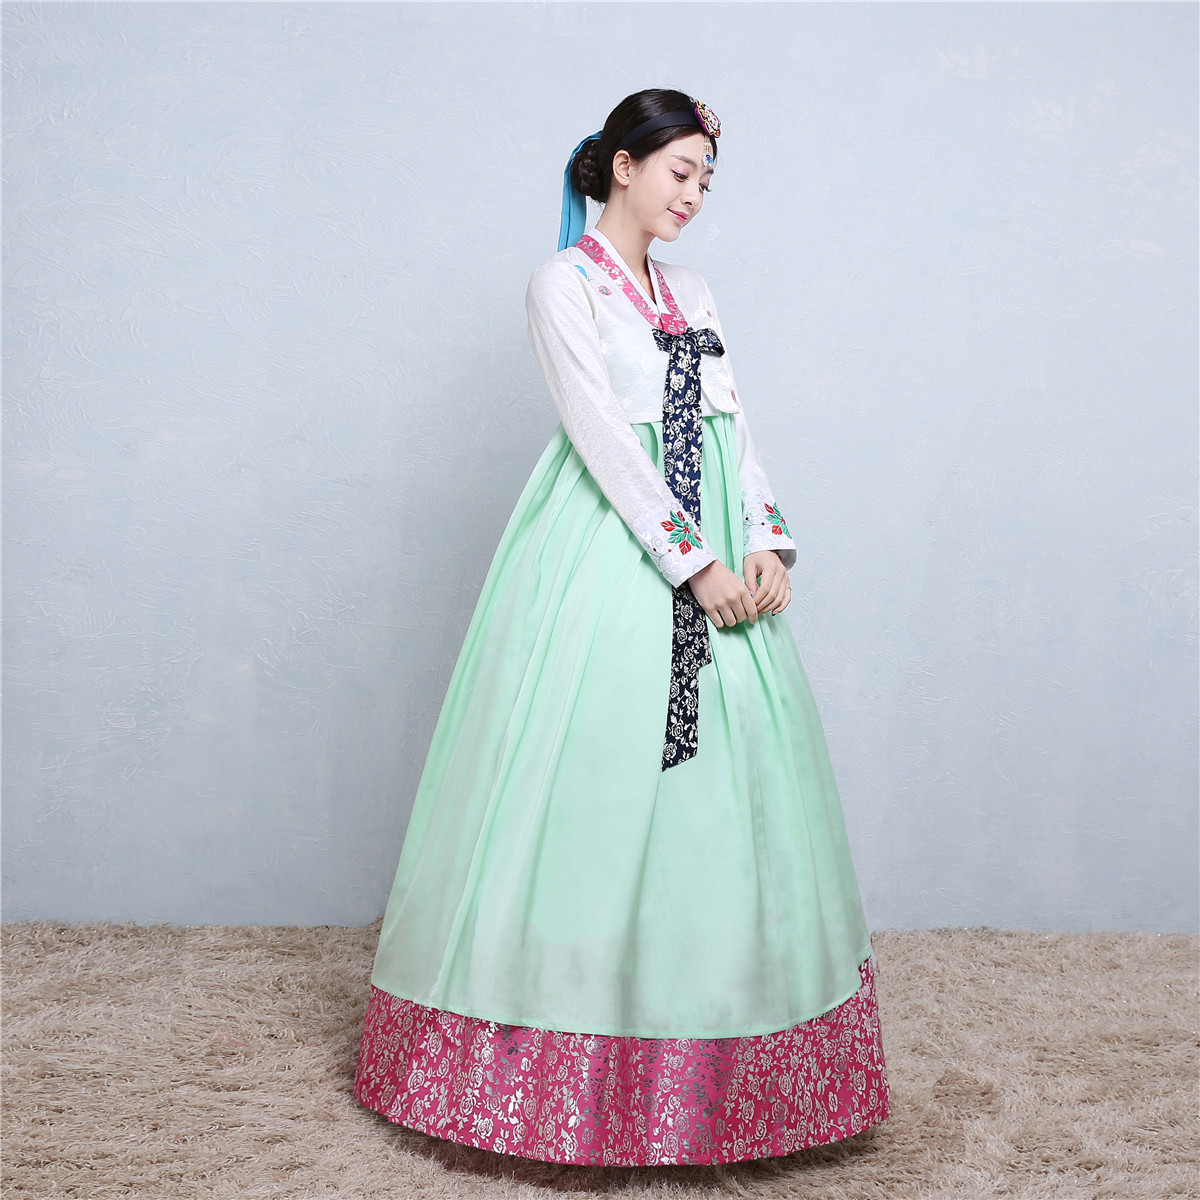 new embroidered hanbok traditional korean clothing long